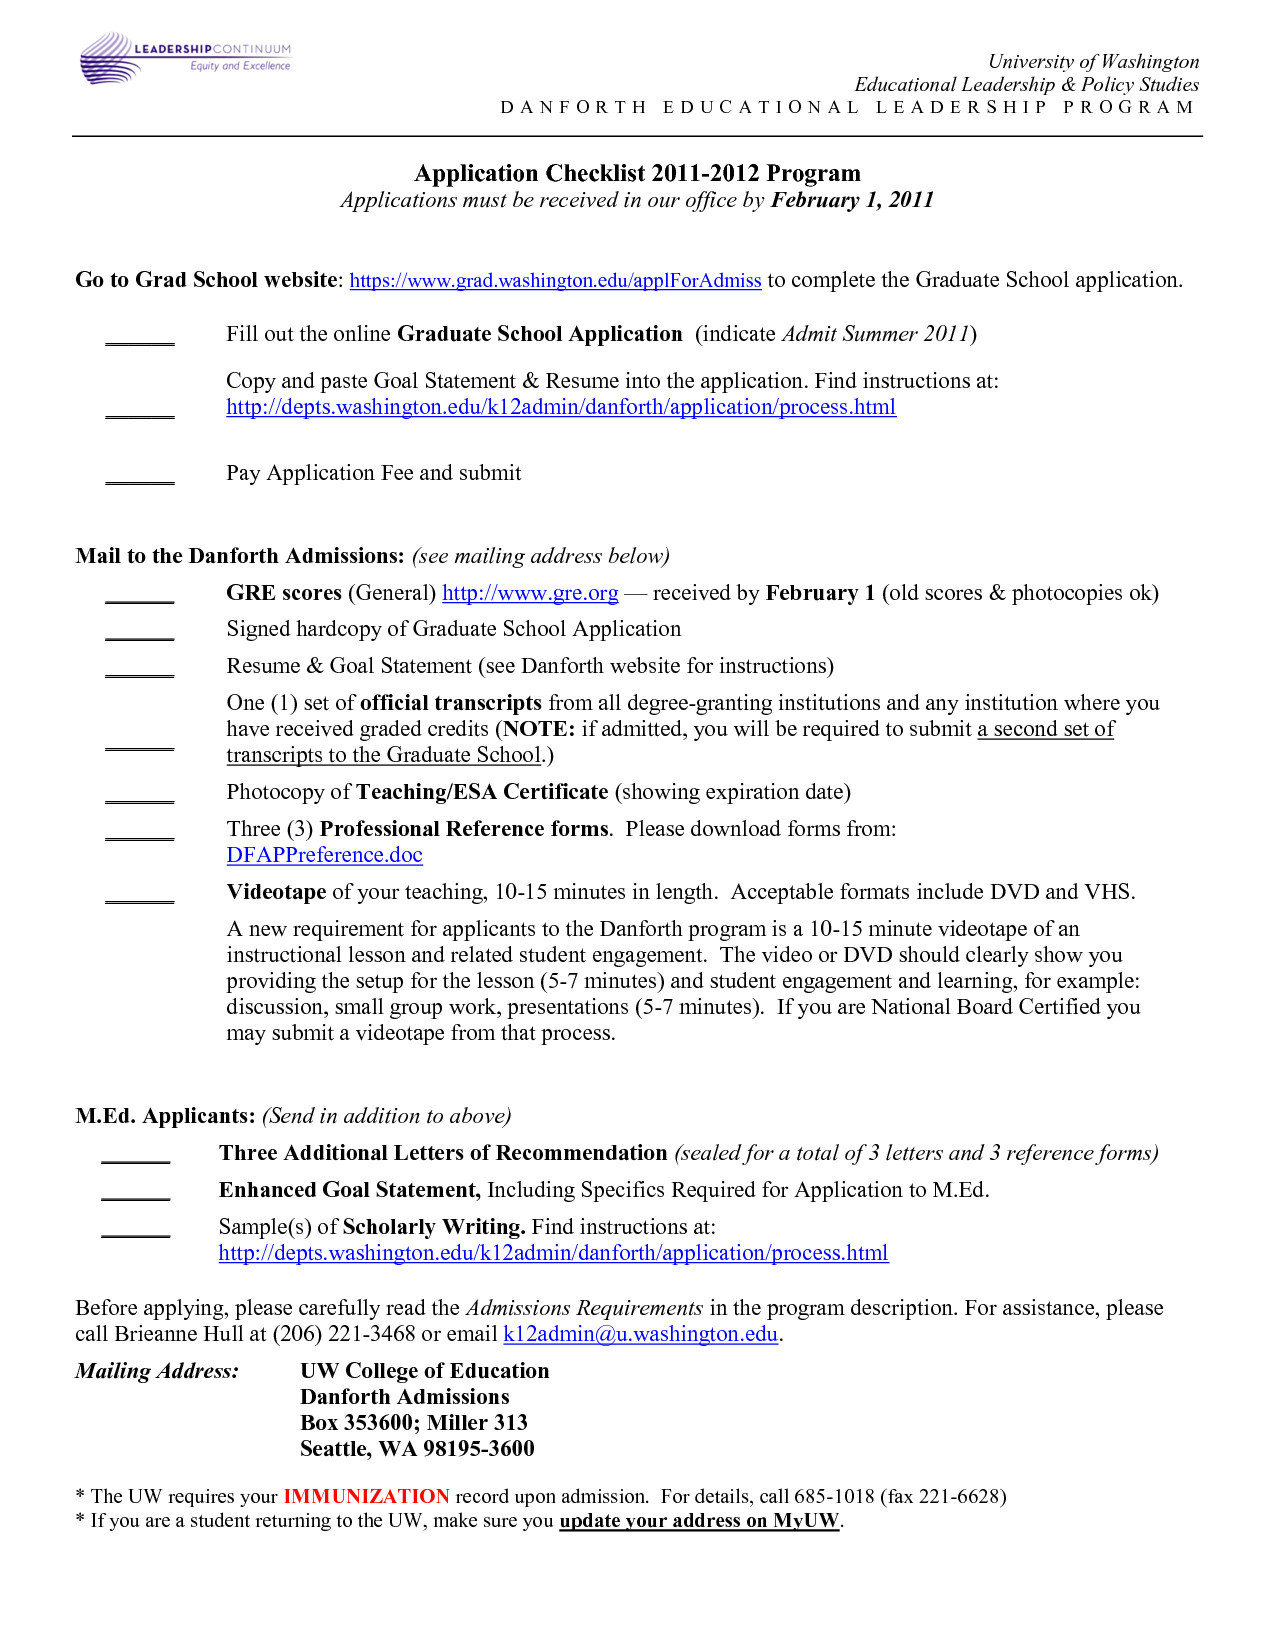 academic resume template for grad school Collection-Academic Resume Template For Grad School 2018 Resume For Graduate School Application 5-m